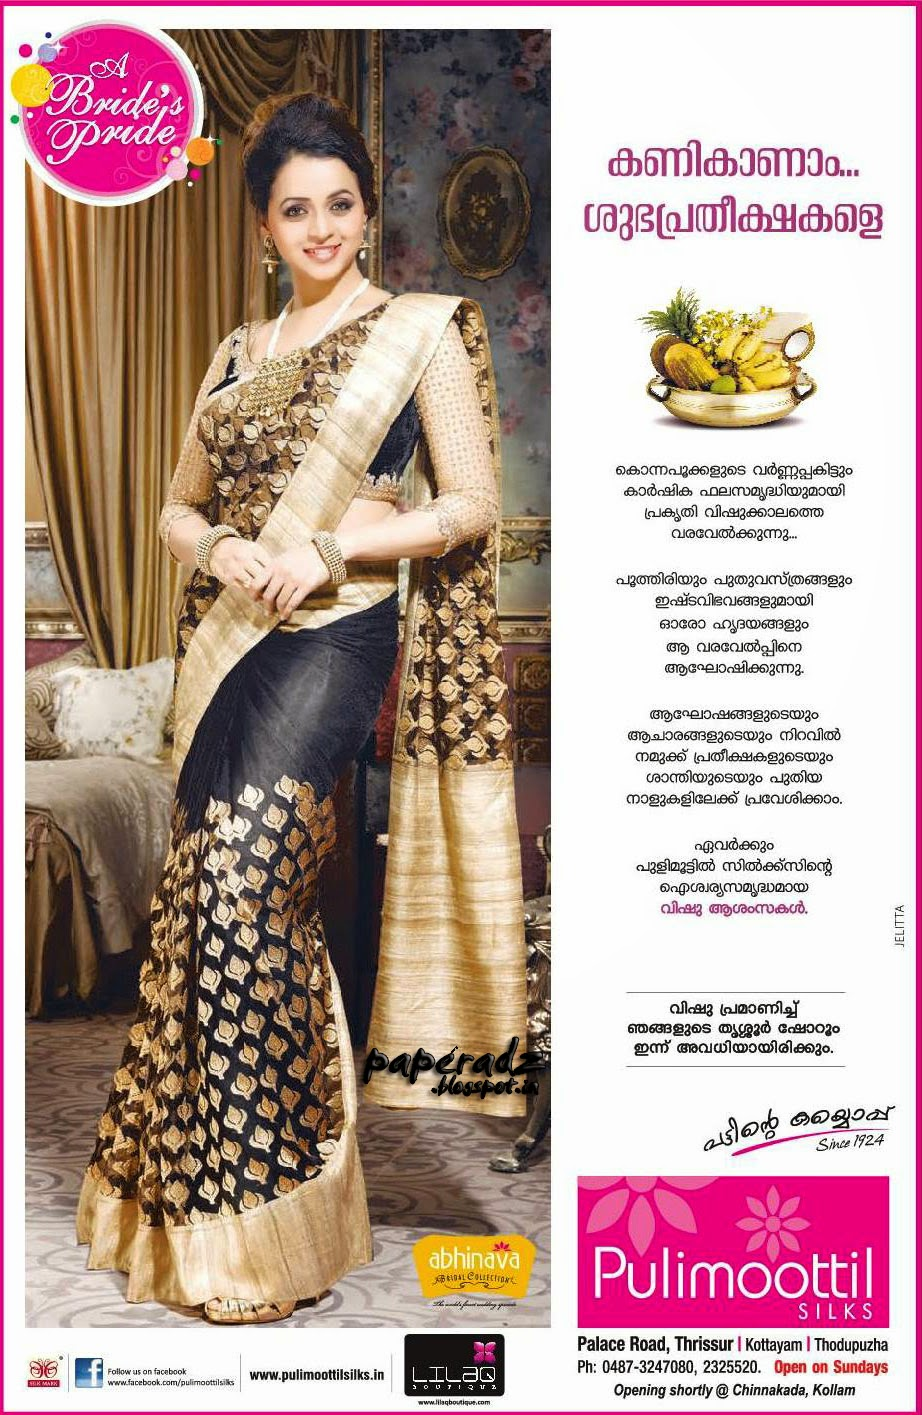 Pulimoottil silks kollam new showroom inauguration bhavana ads pulimoottil silks kollam new showroom inauguration bhavana ads altavistaventures Image collections